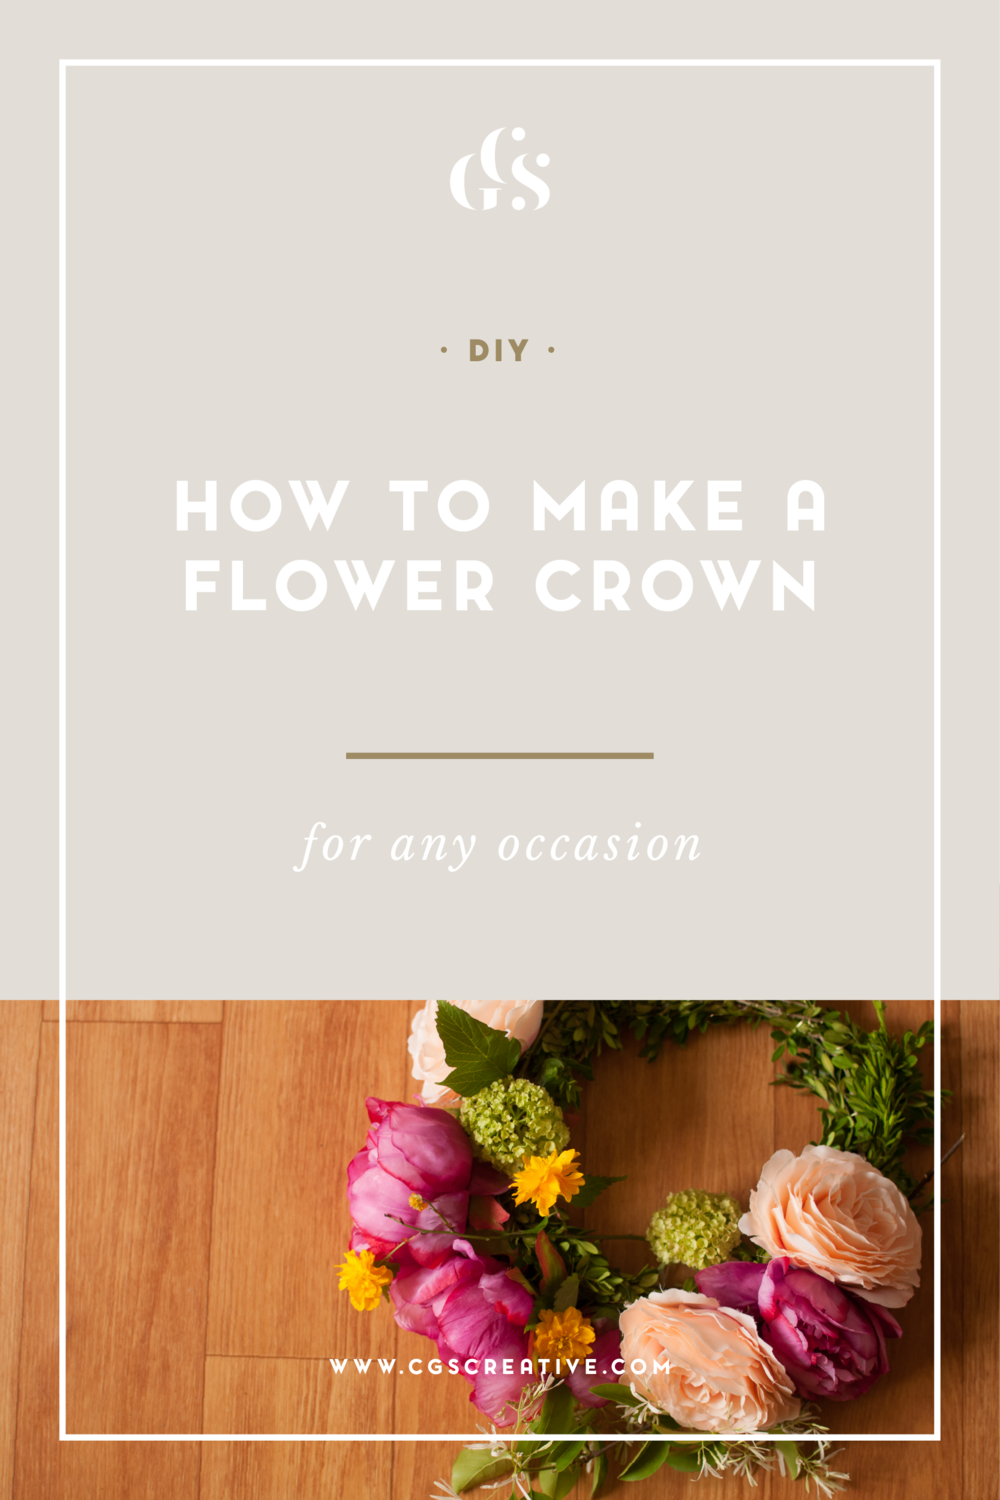 How to make a flower crown diydaysinkorea citygirlsearching diy how to make a flower crown izmirmasajfo